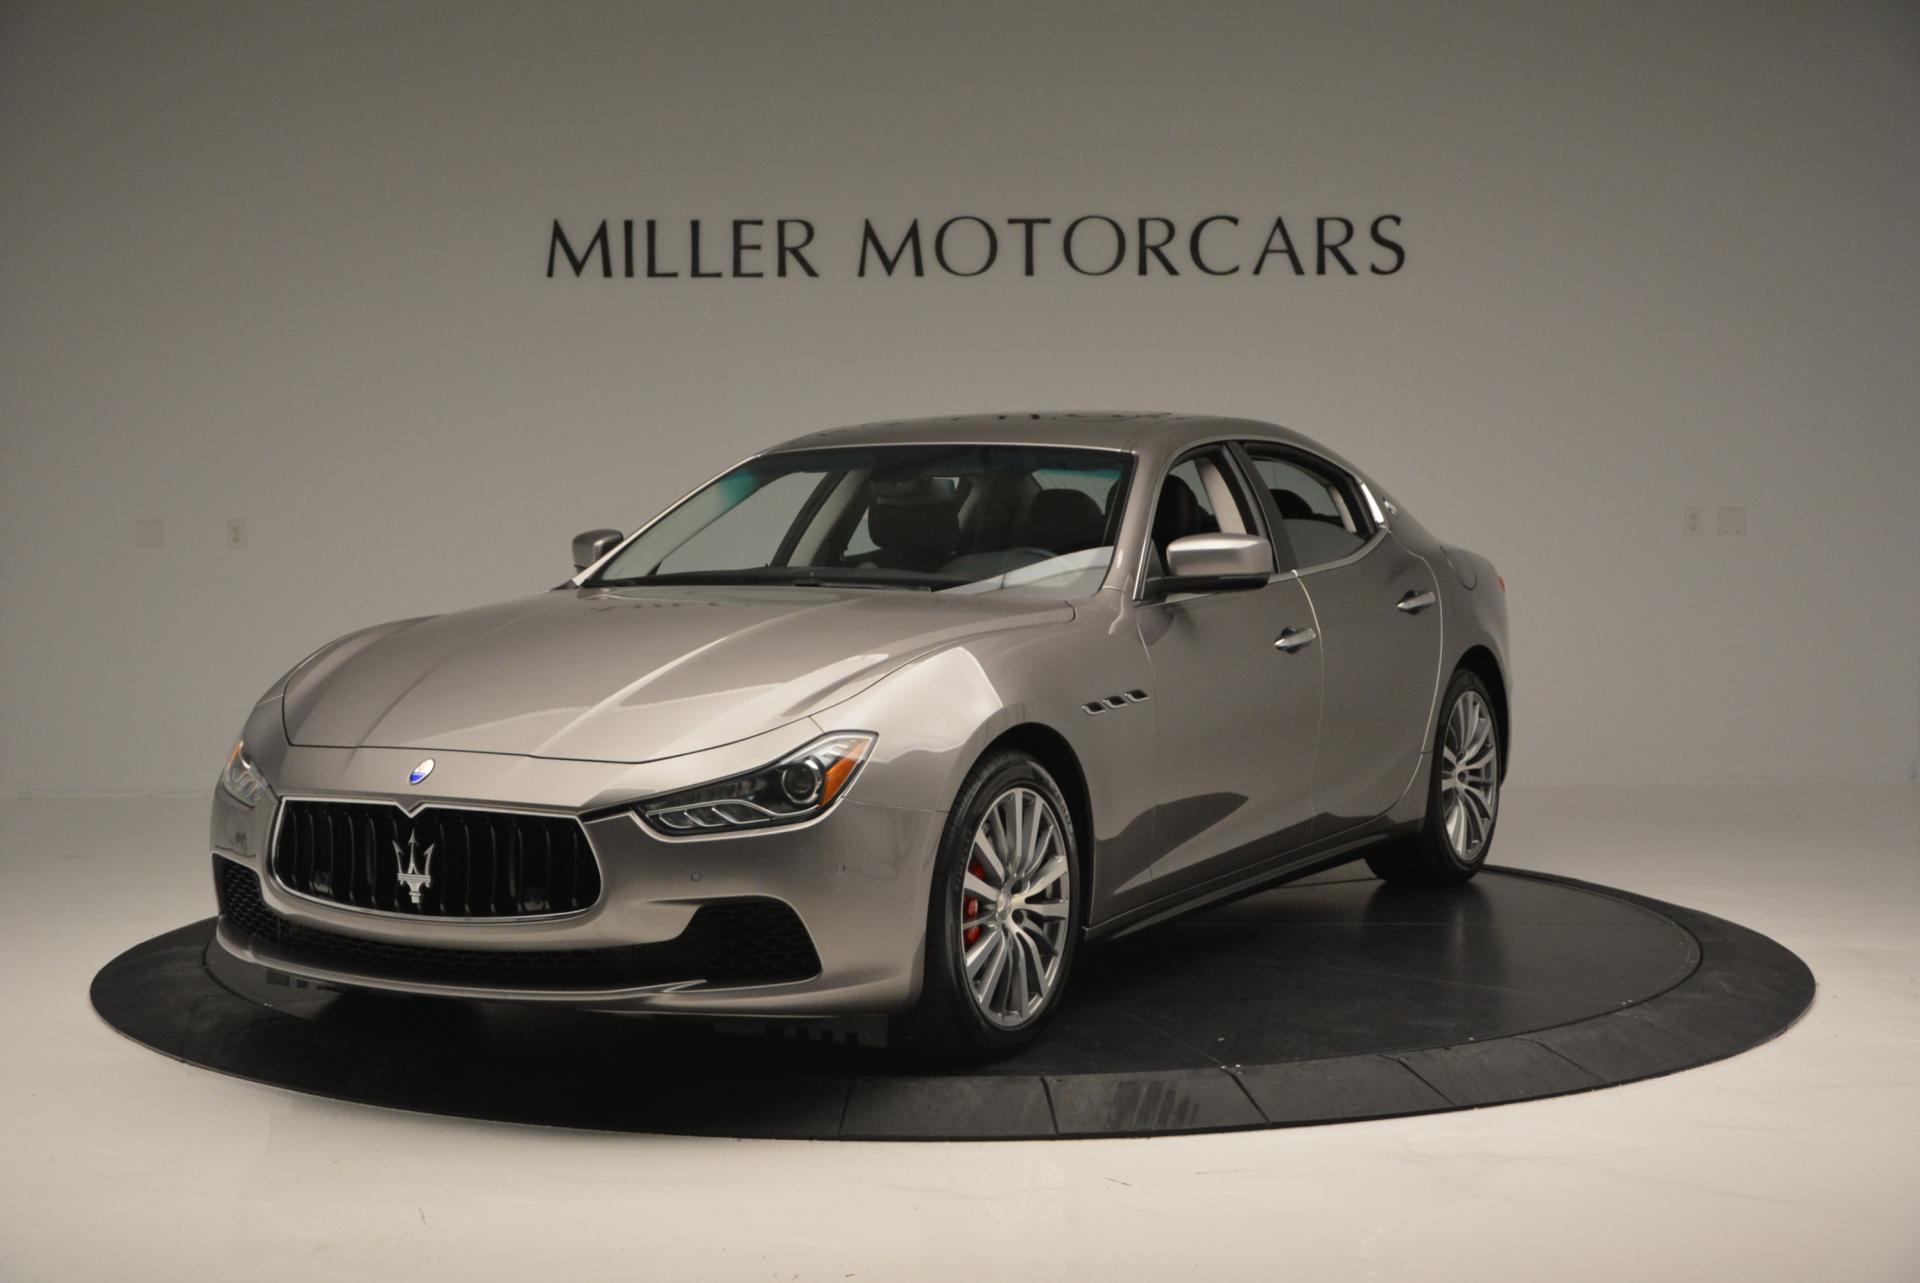 New 2016 Maserati Ghibli S Q4 for sale Sold at Maserati of Greenwich in Greenwich CT 06830 1